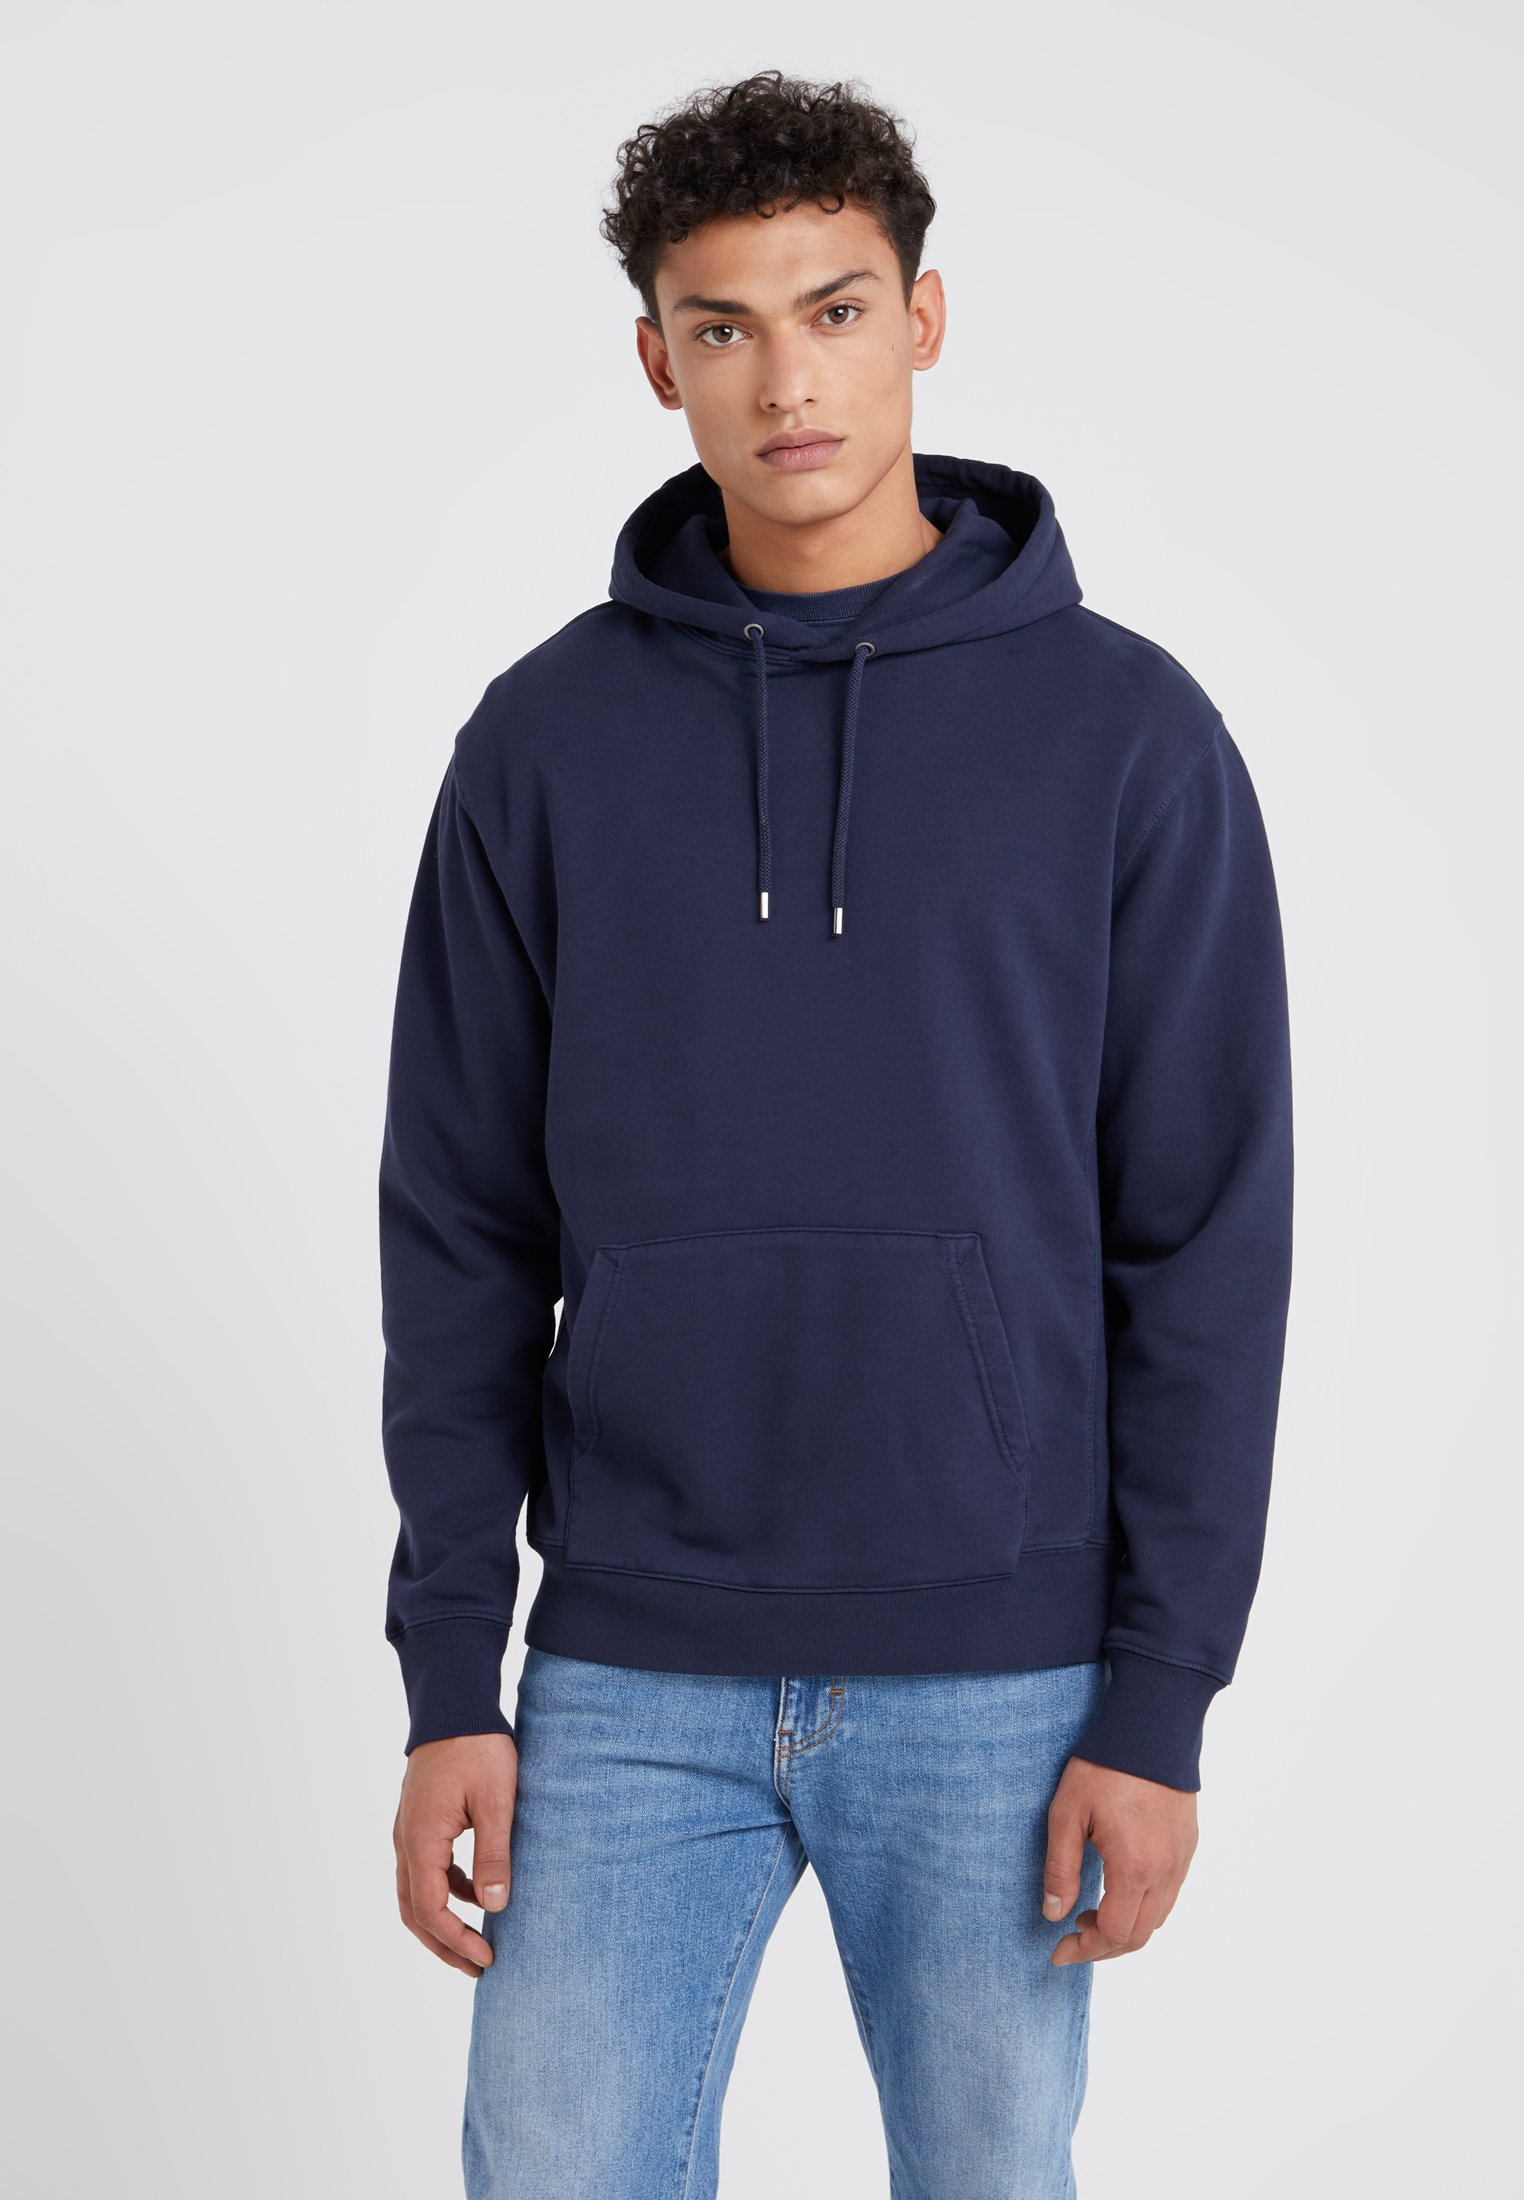 crew Terry Washed À J French HoodySweat Navy Capuche Dye EWDI2H9